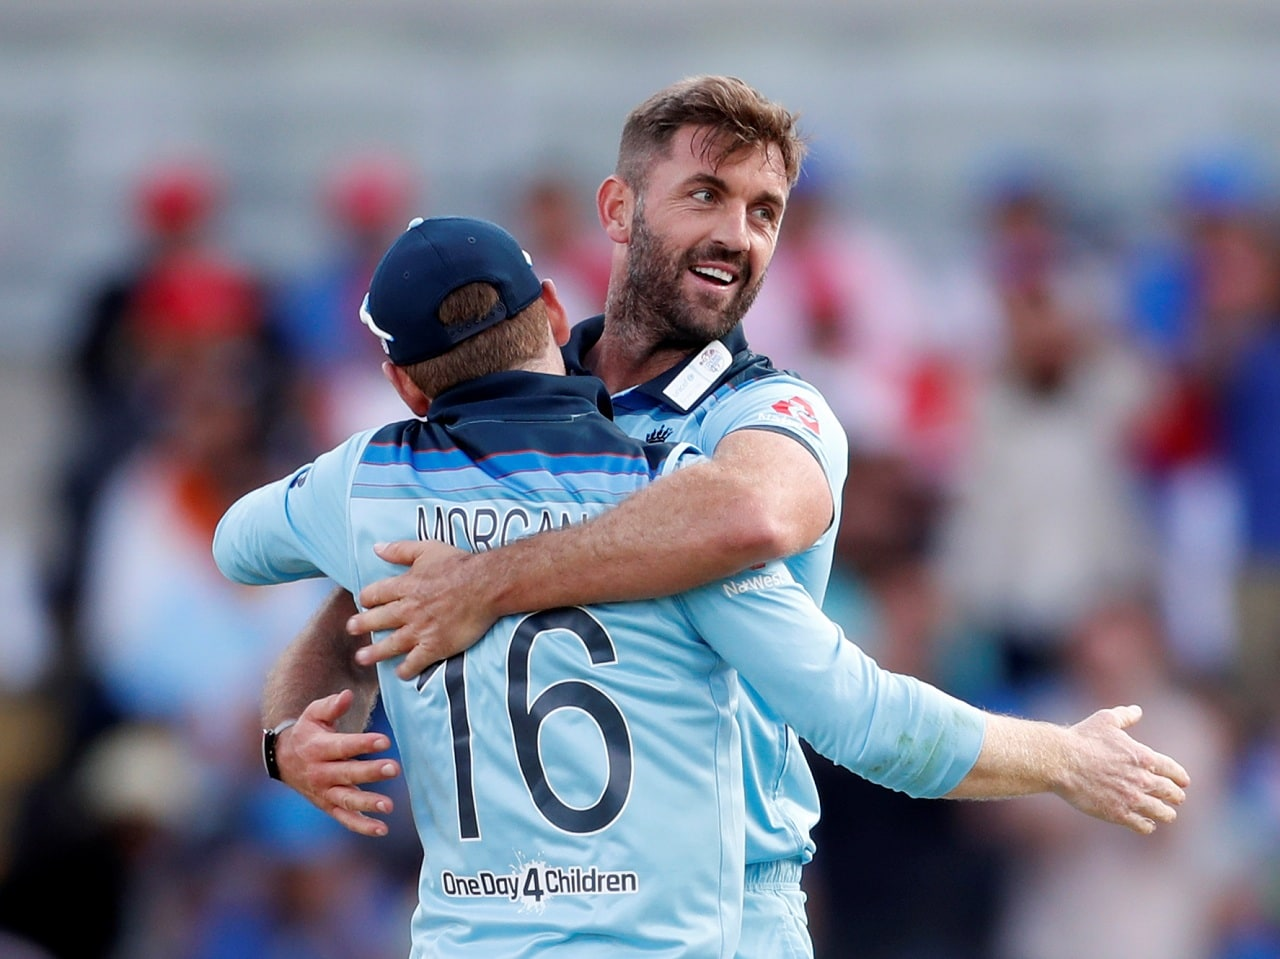 Cricket - ICC Cricket World Cup - England v India - Edgbaston, Birmingham, Britain - June 30, 2019 England's Liam Plunkett celebrates with Eoin Morgan after taking the wicket of India's Hardik Pandya Action Images via Reuters/Paul Childs